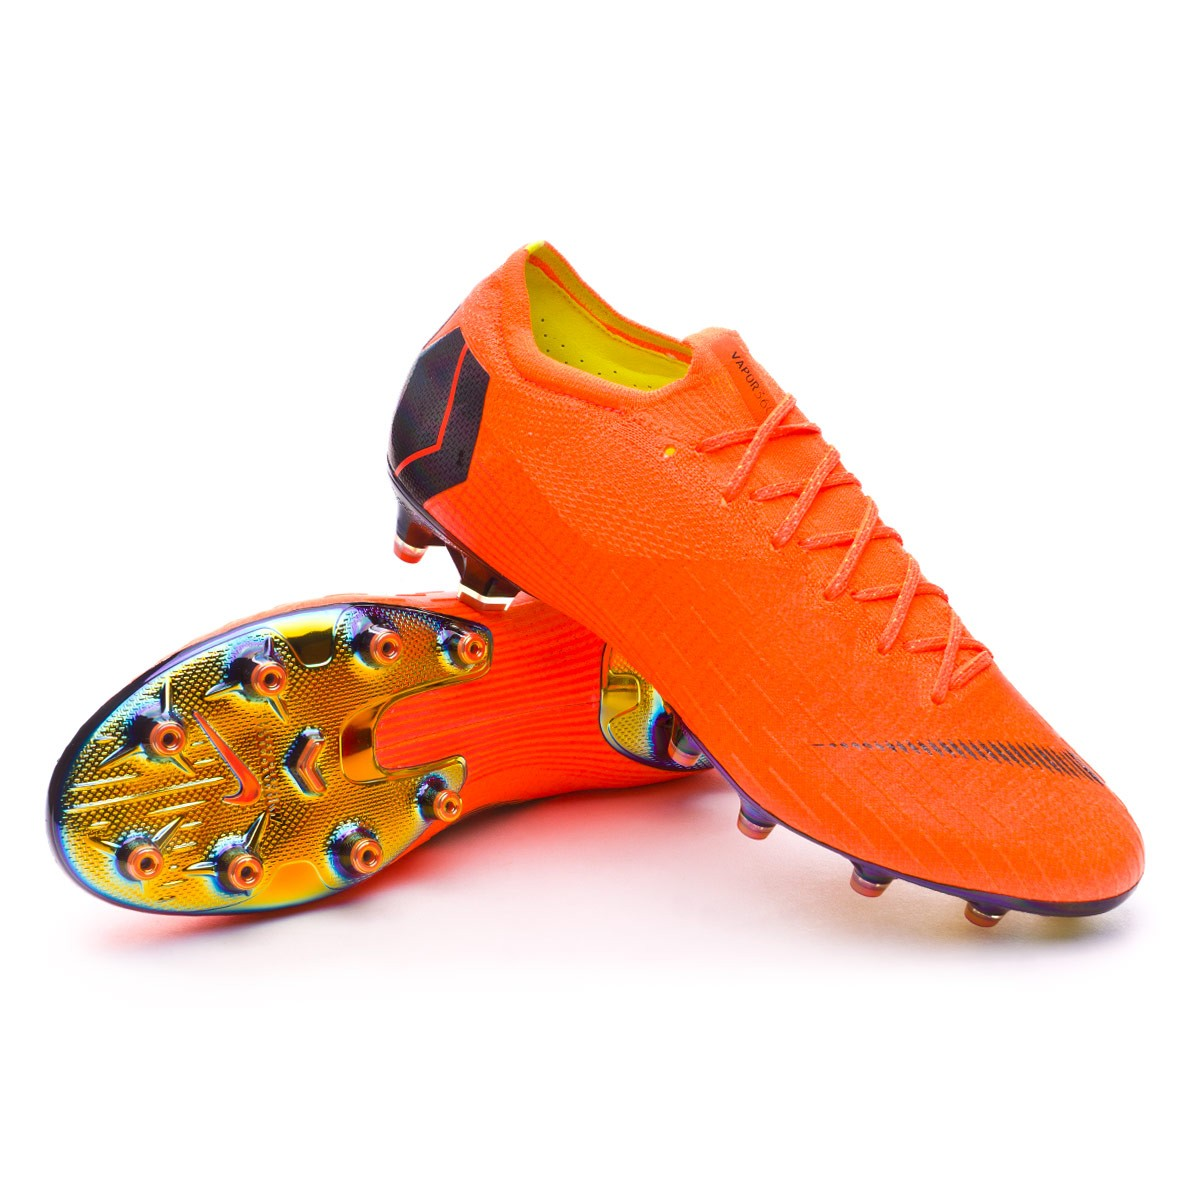 Boot Nike Mercurial Vapor XII Elite AG-Pro Total orange-Black-Volt ... 28613cbe7c